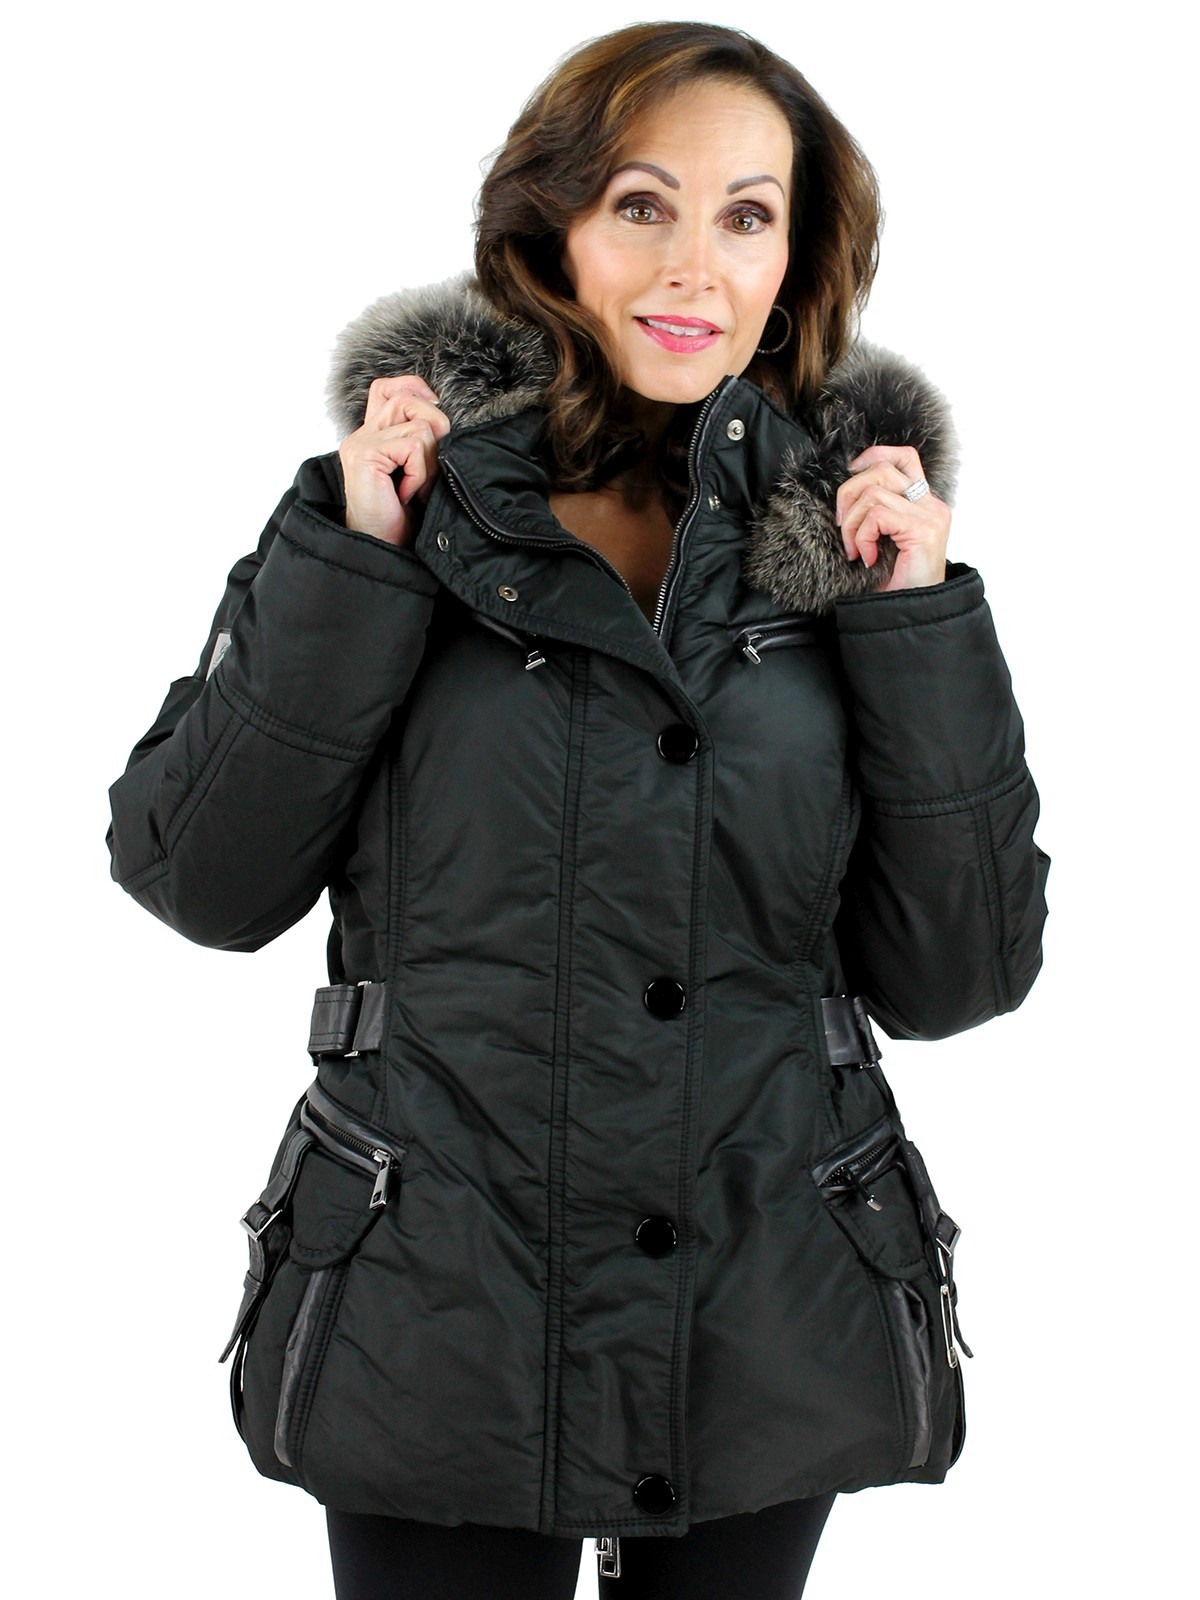 69578070d04a Gorski Woman s Apres Ski Jacket (Fox Trimmed Hood and Leather Details)